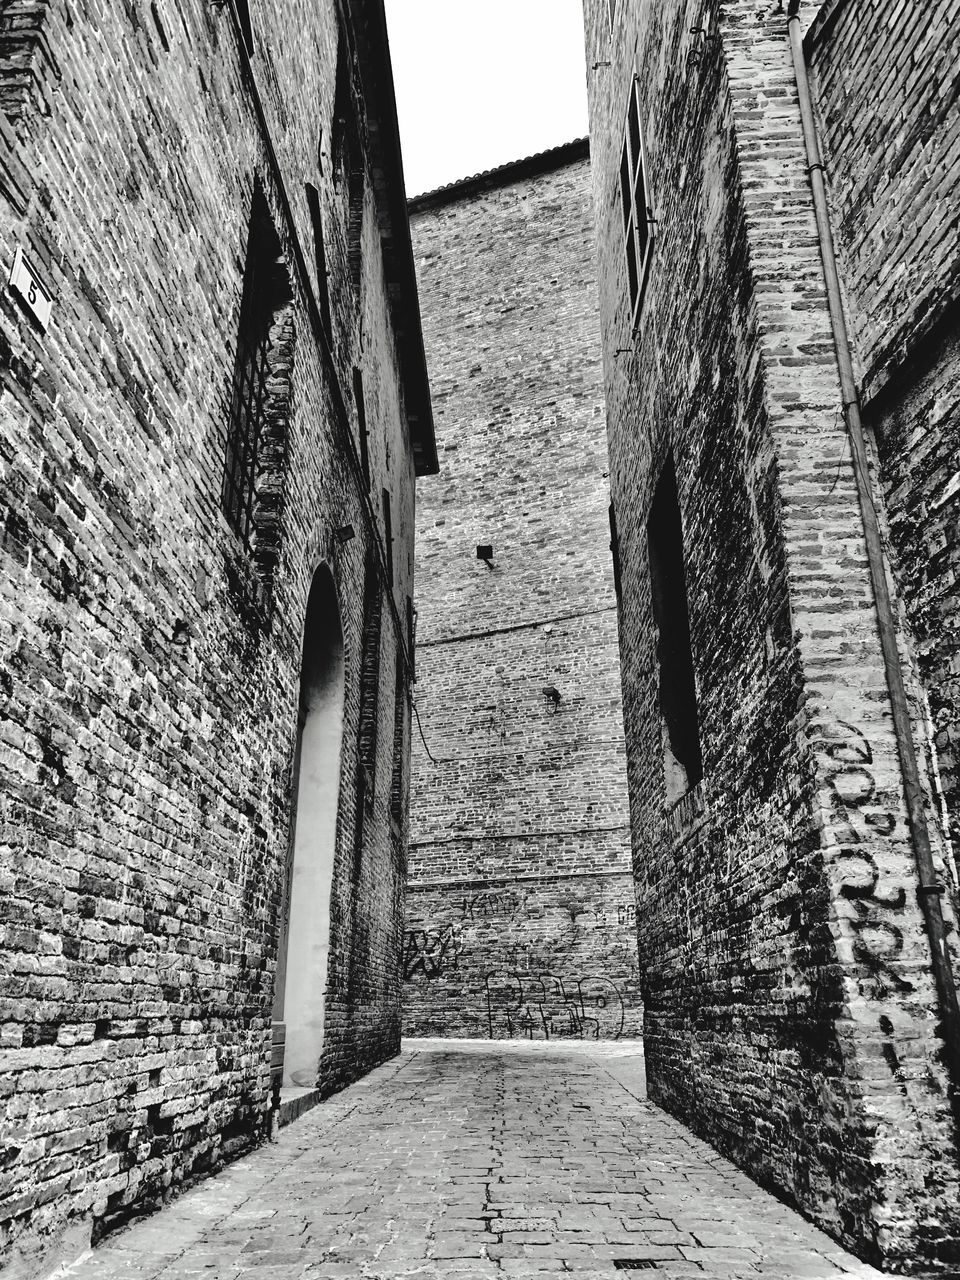 architecture, built structure, the way forward, direction, wall, wall - building feature, day, building exterior, brick wall, no people, brick, building, outdoors, old, footpath, narrow, the past, history, staircase, nature, diminishing perspective, stone wall, alley